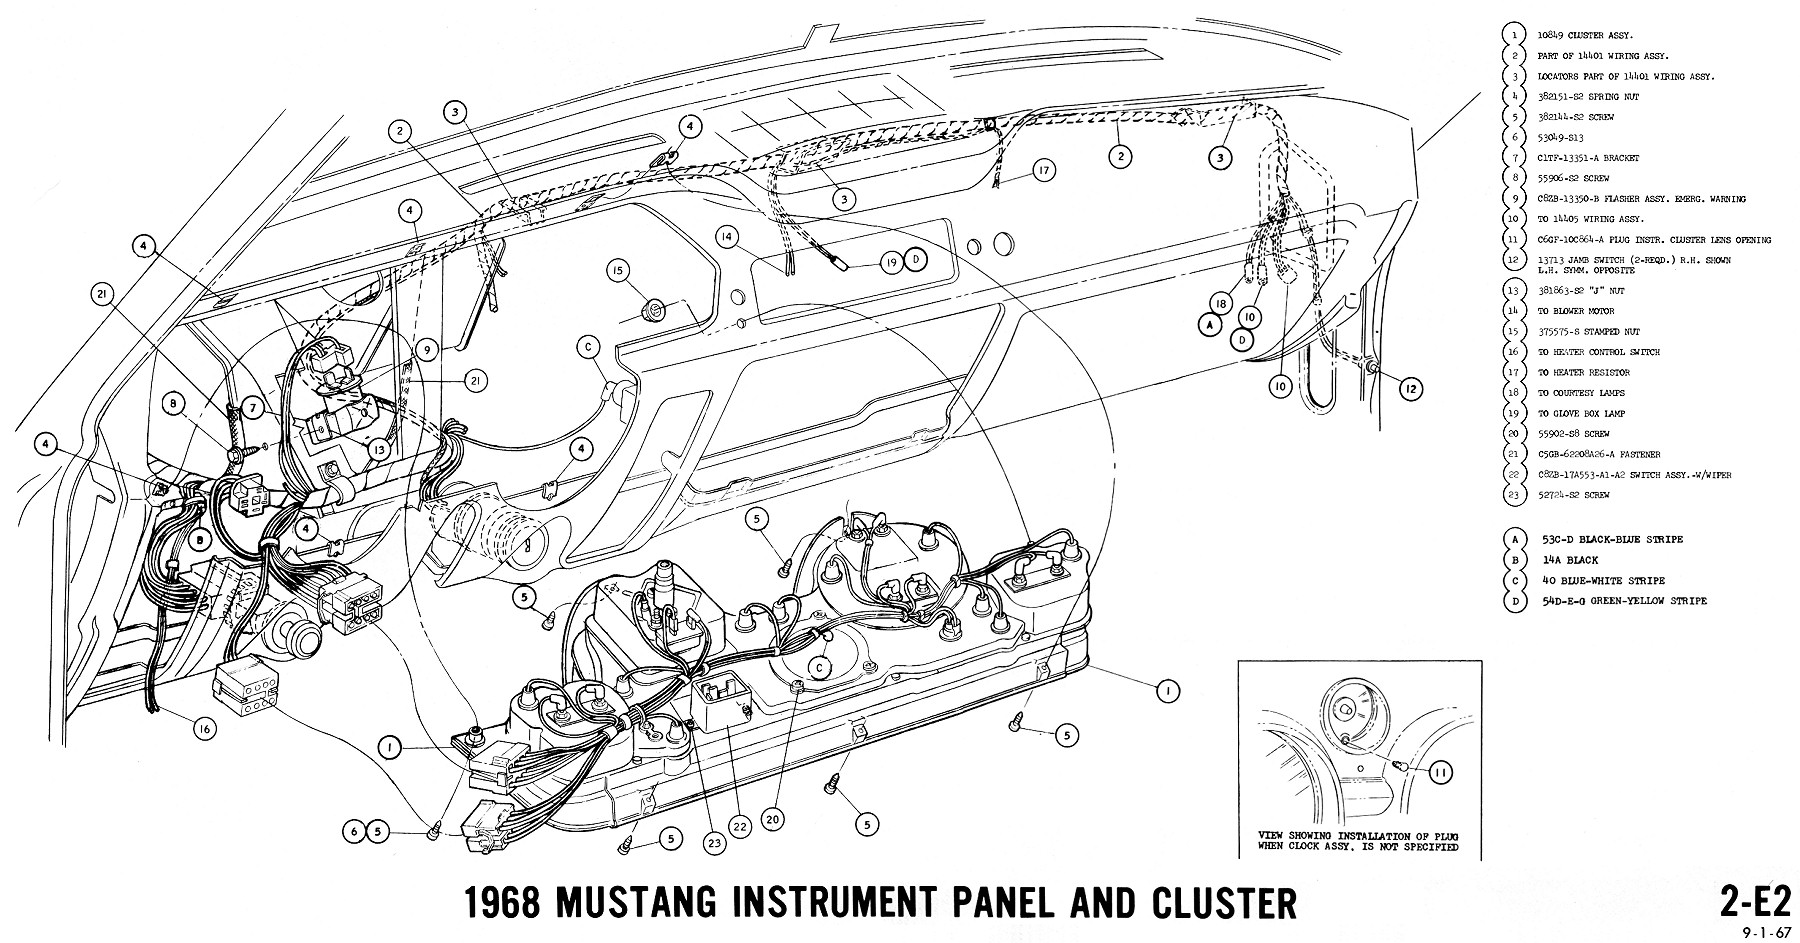 Wiring Diagram For A 1968 Ford Mustang Just Data 0 5 Tach Diagrams And Vacuum Schematics Average Joe F100